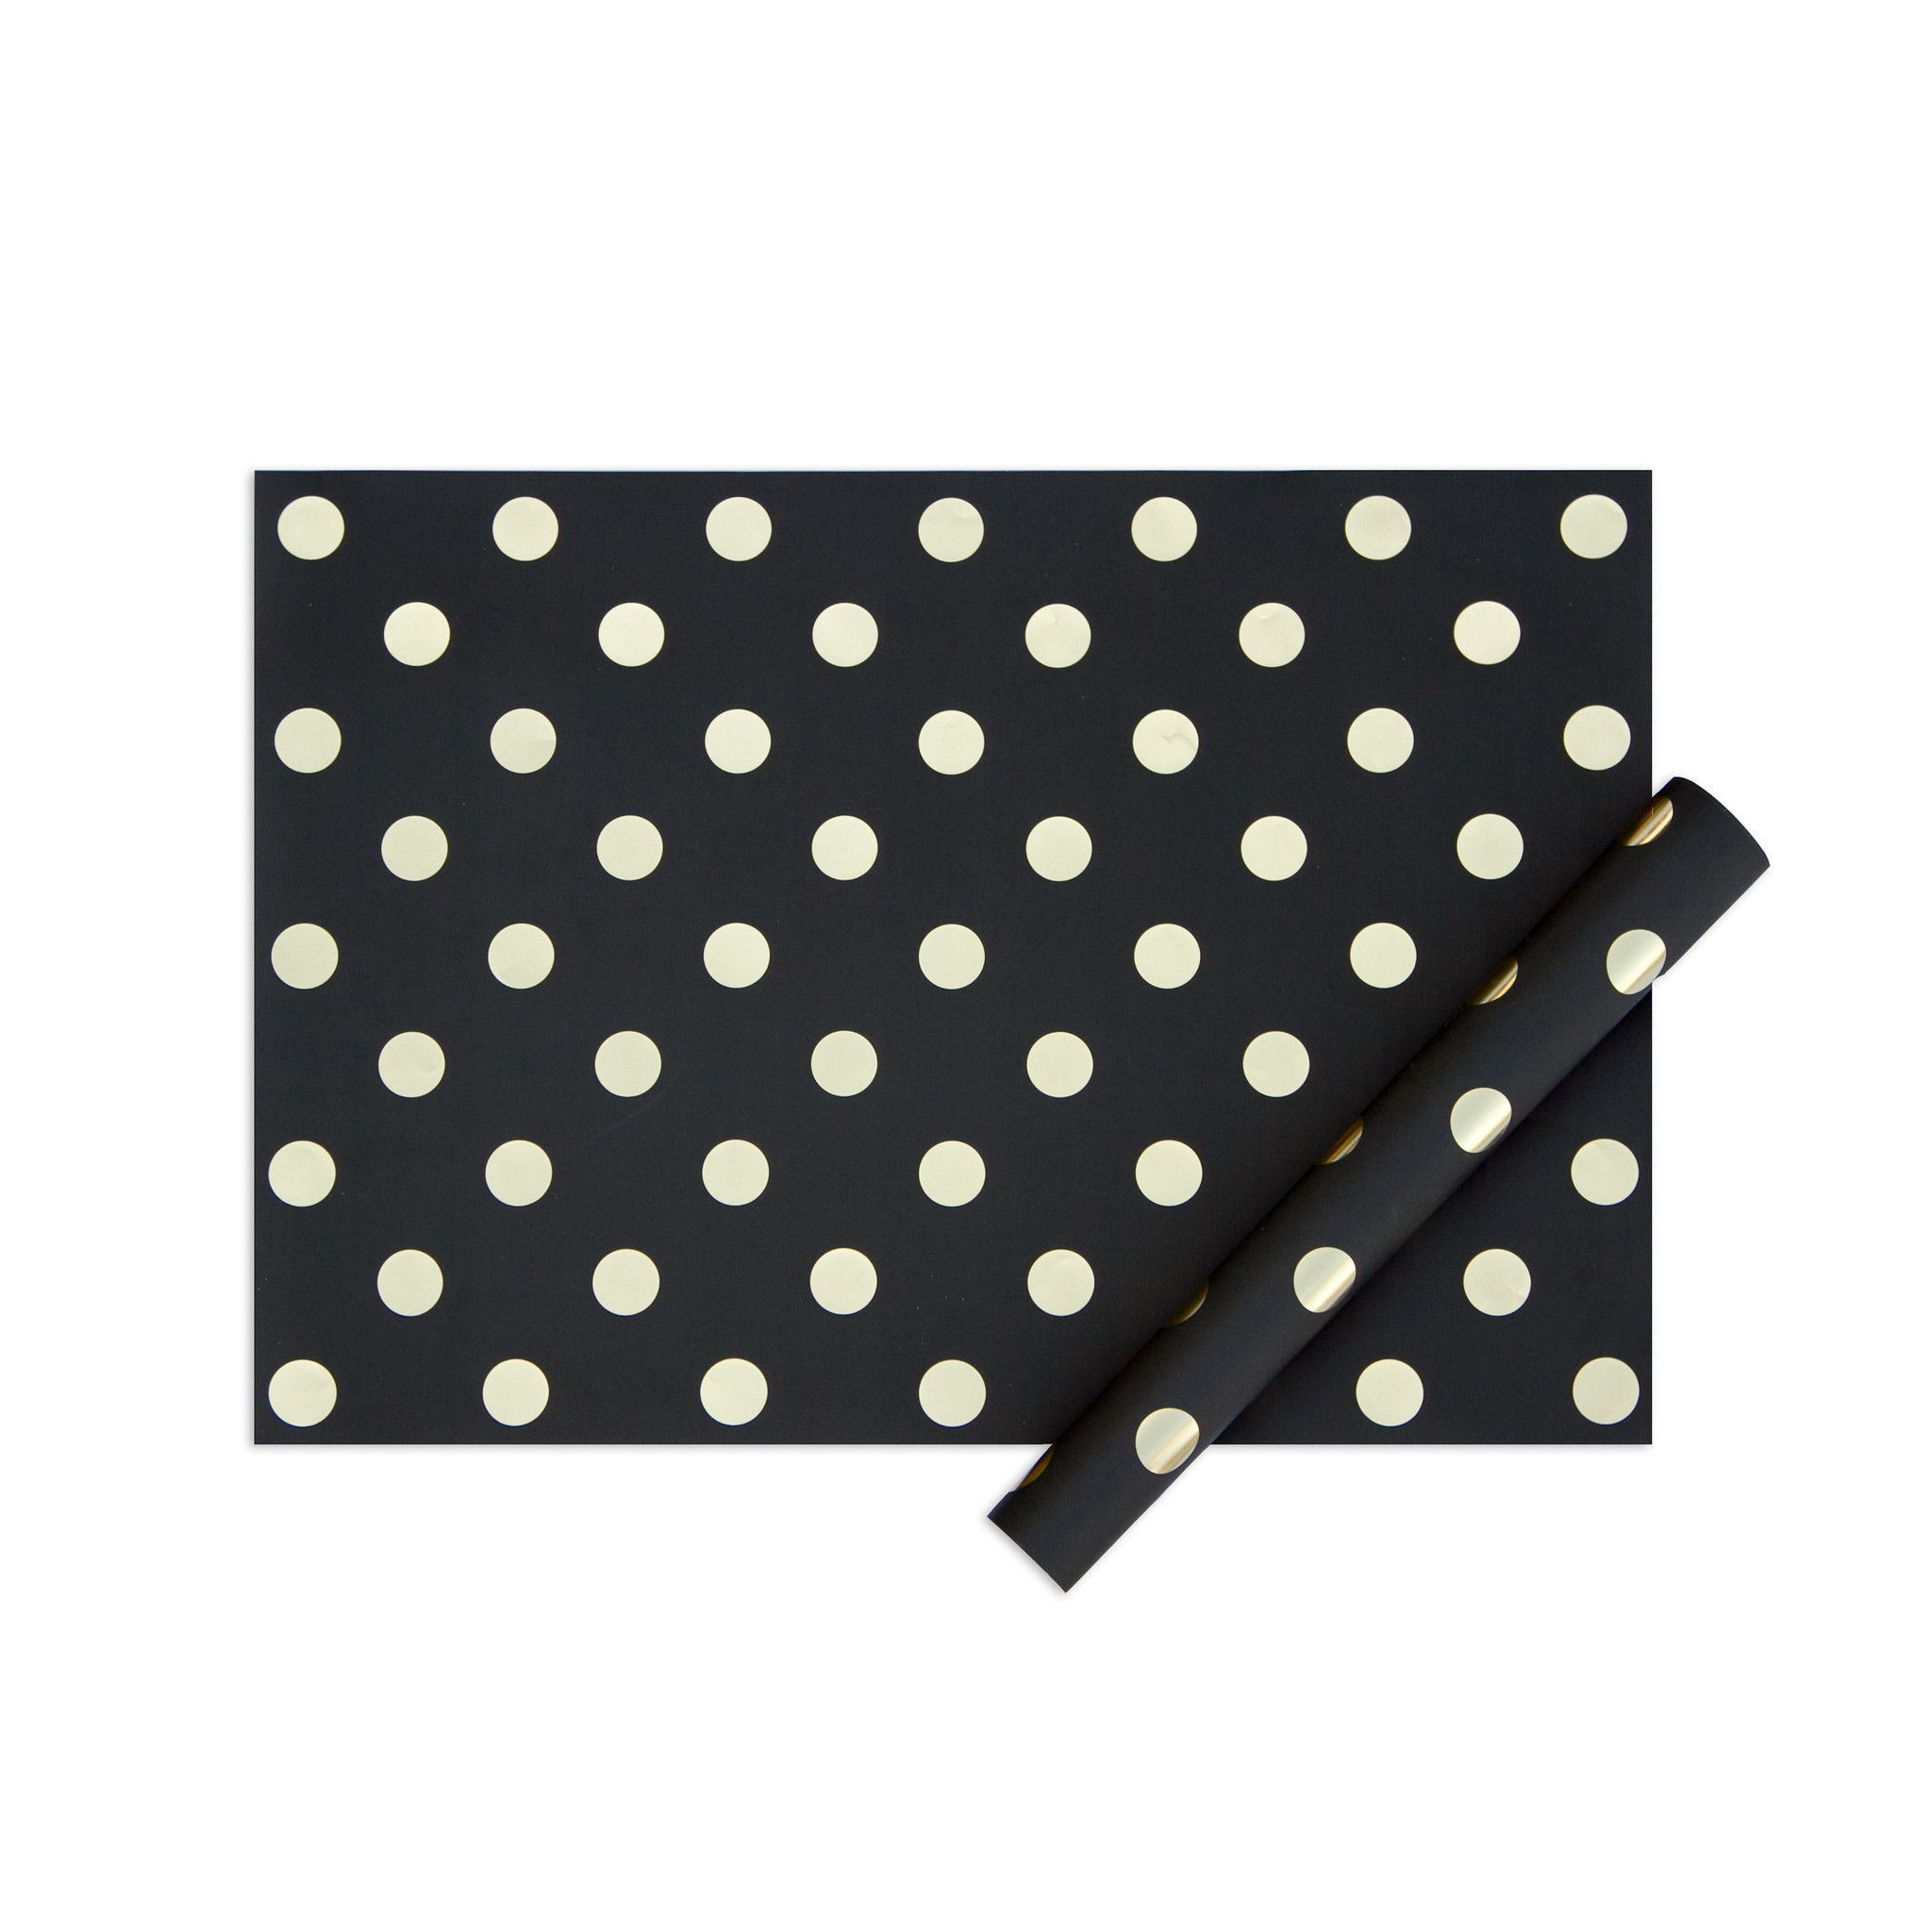 "Sheet t wrap 19"" x 27"" black with pressed gold foil accents 1"